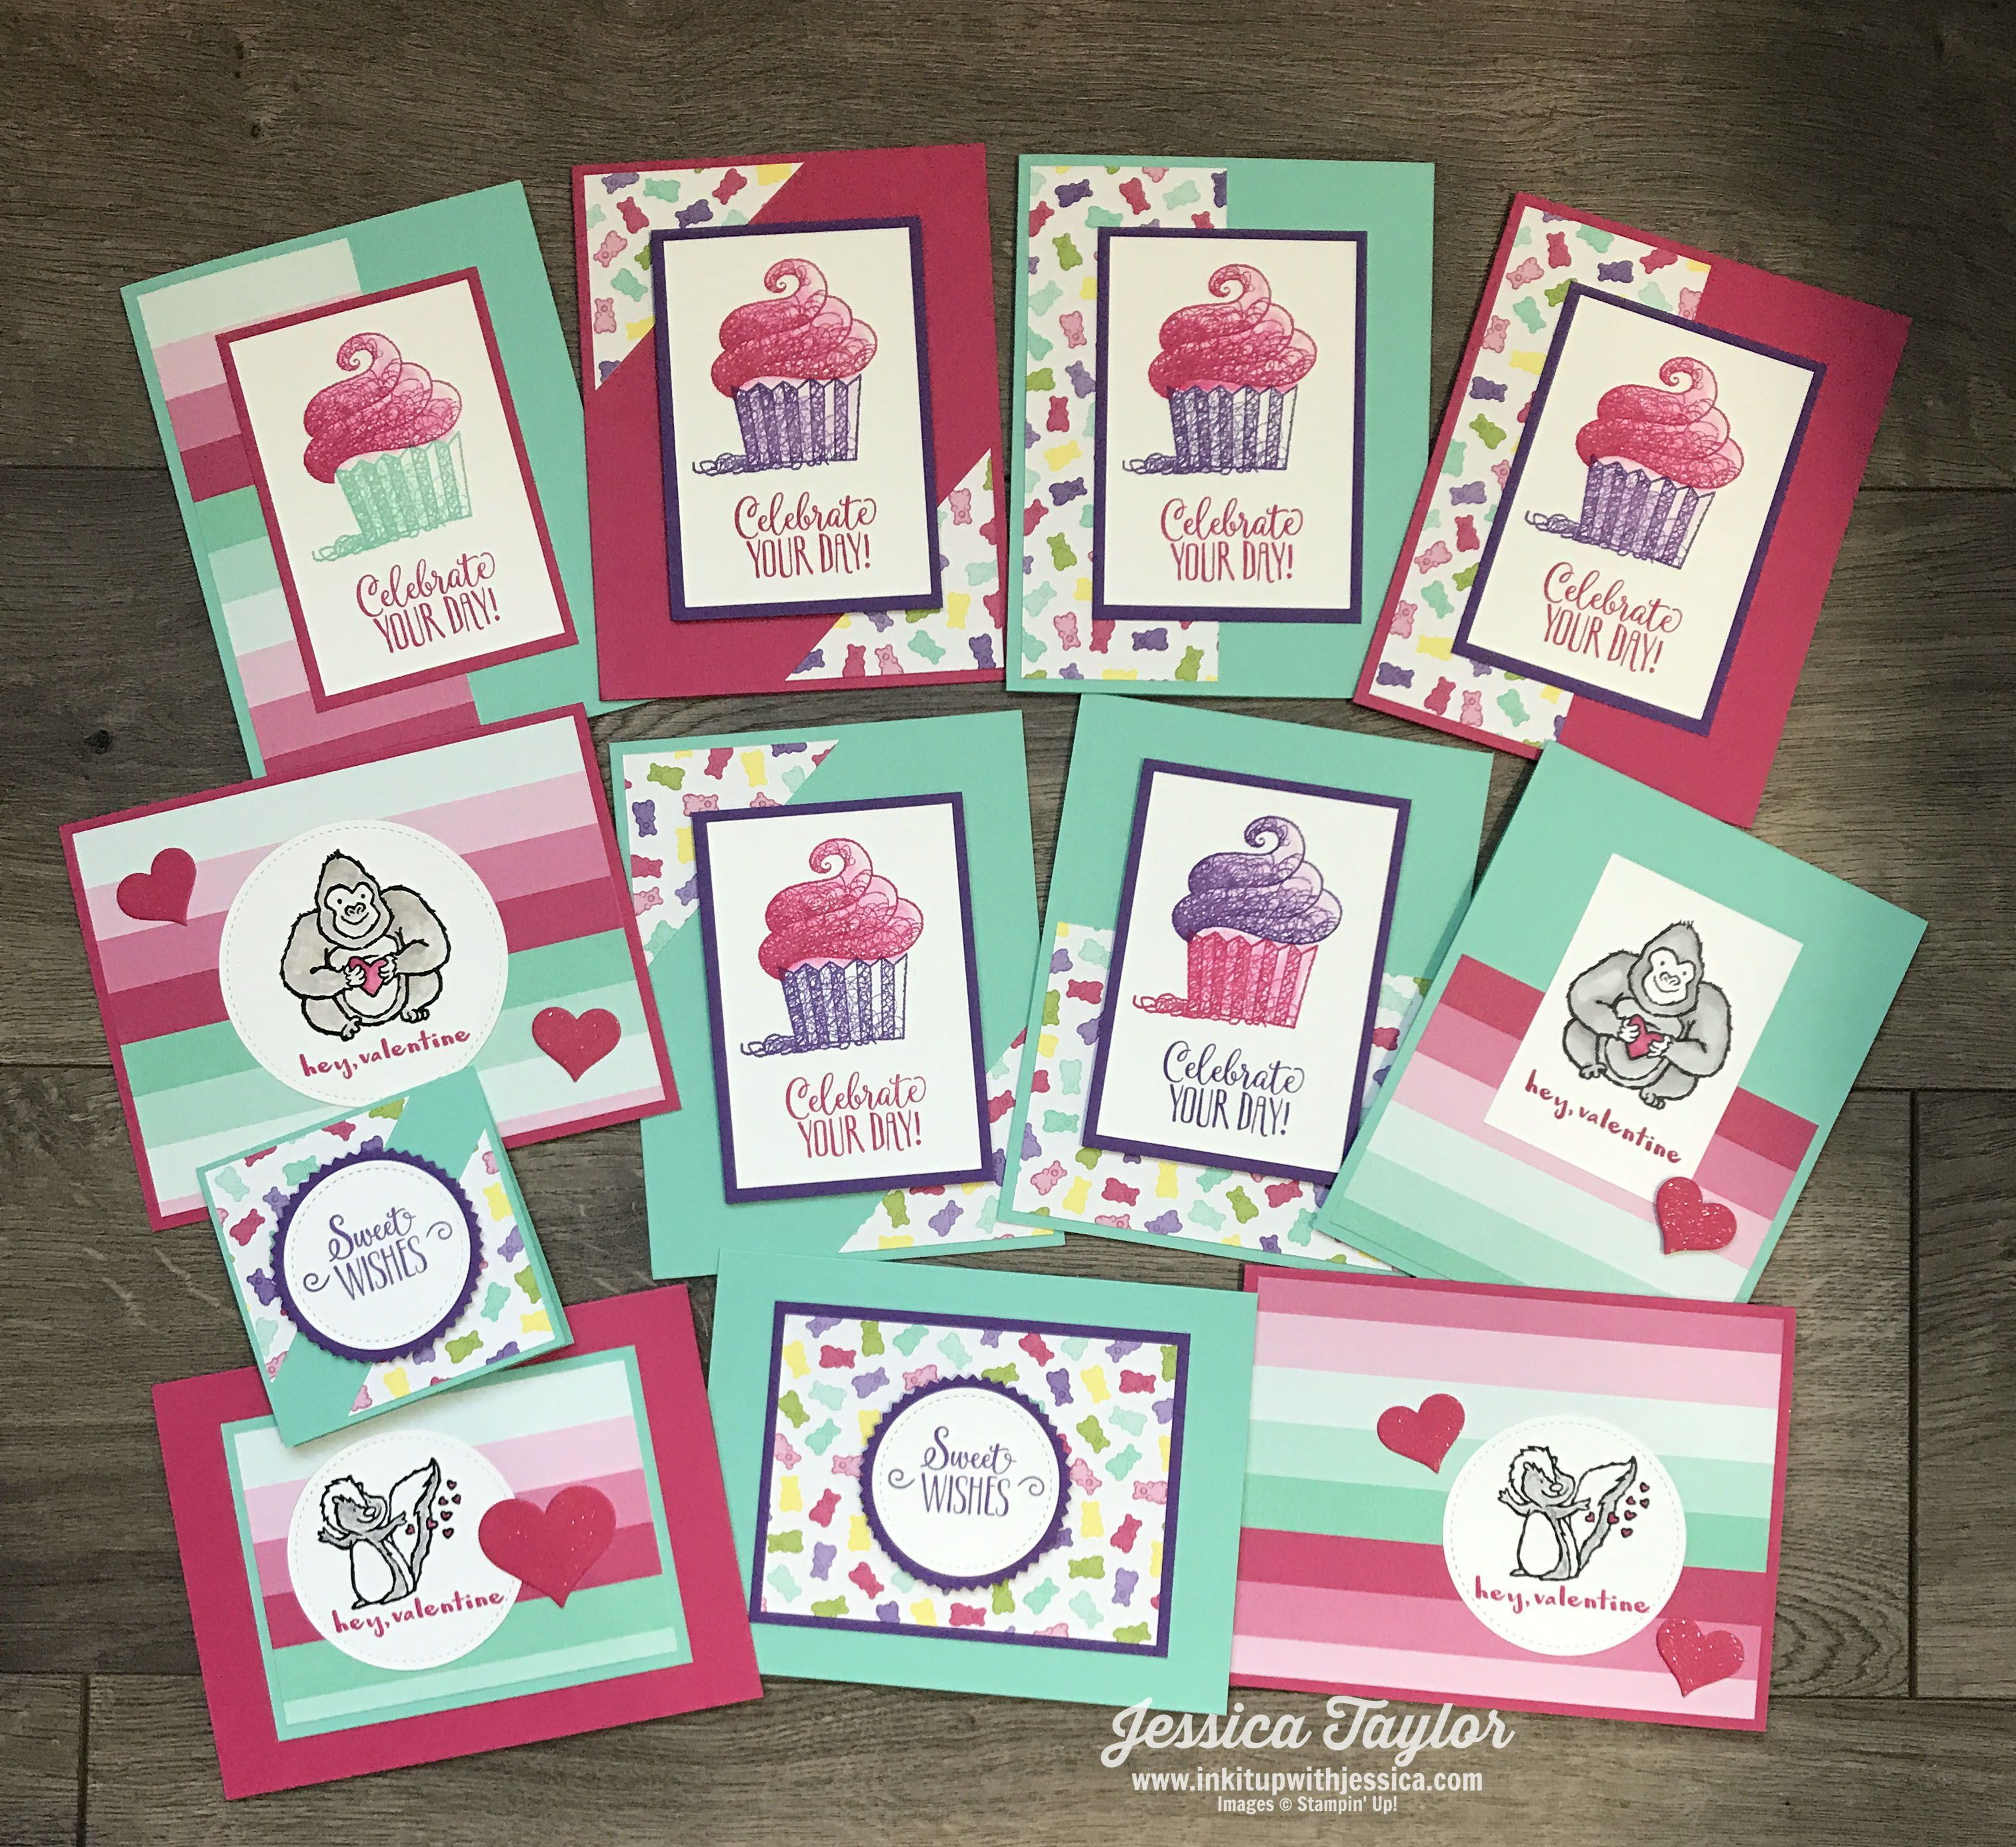 How To Make One Sheet Wonder Cards Card Making Templates Card